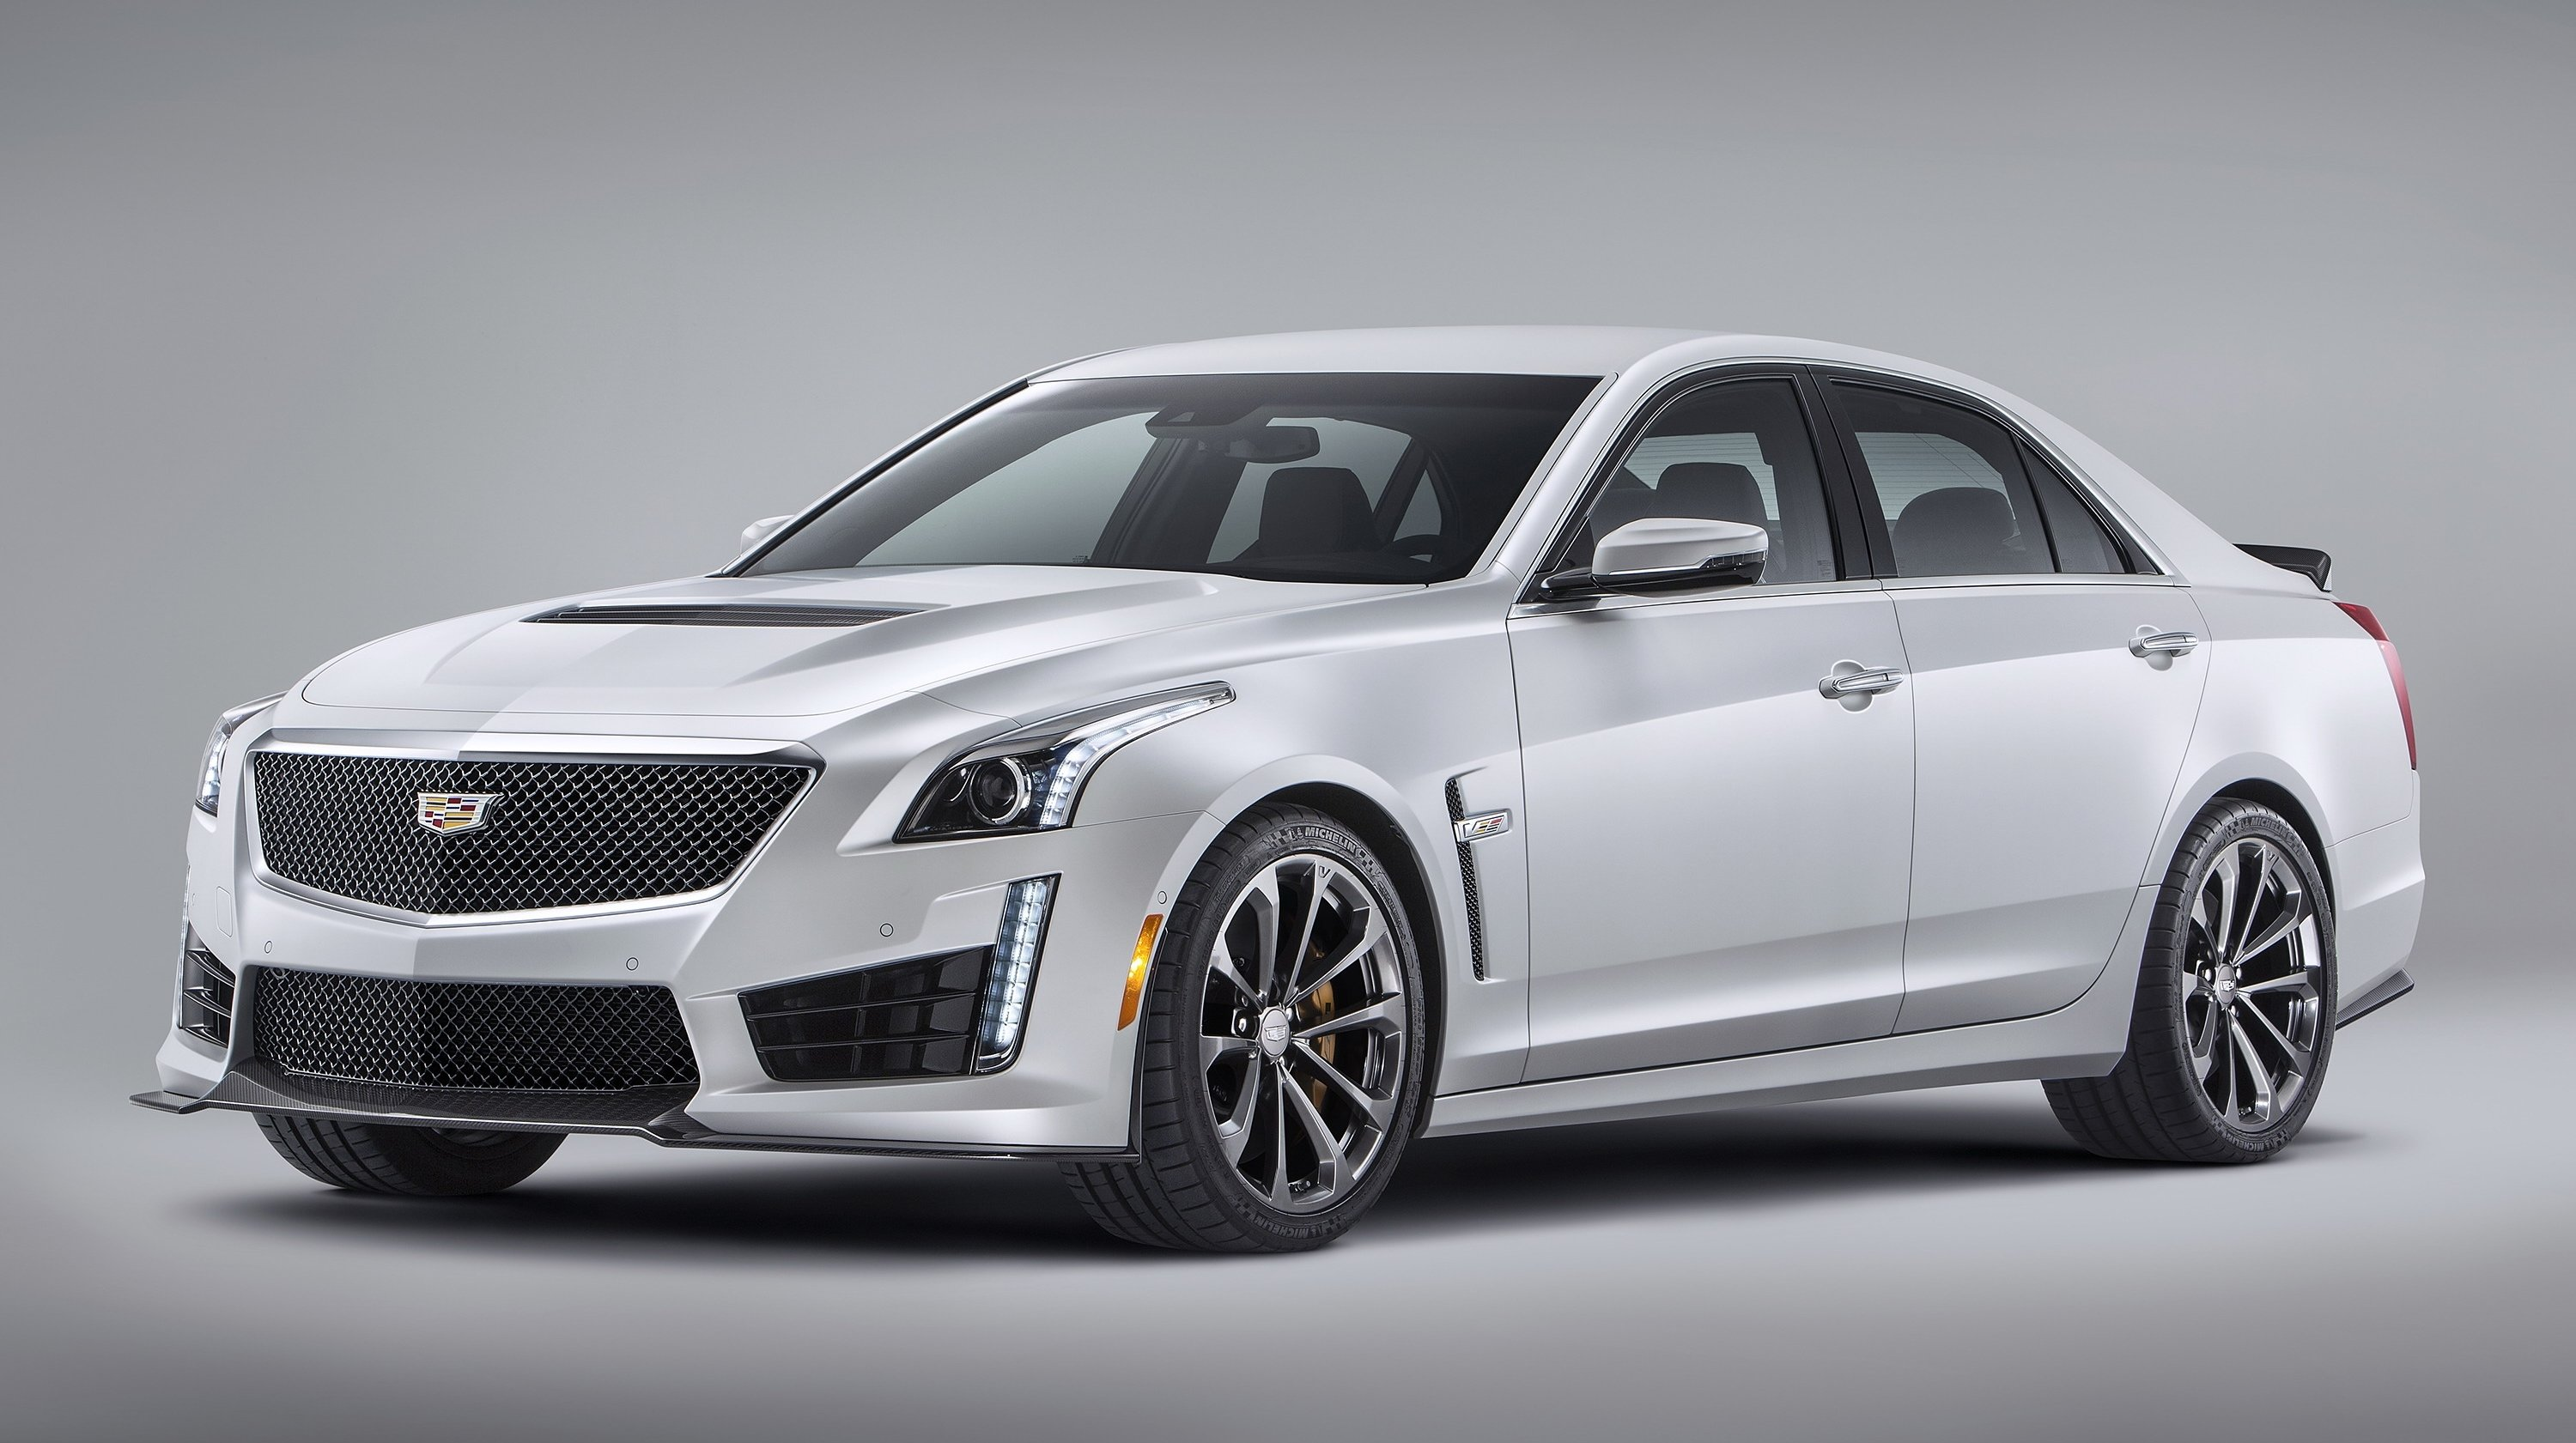 640 horsepower, carbon fiber everywhere, 3.7 seconds to 60 mph, 200-mph top speed, and four door... `Murica!!!